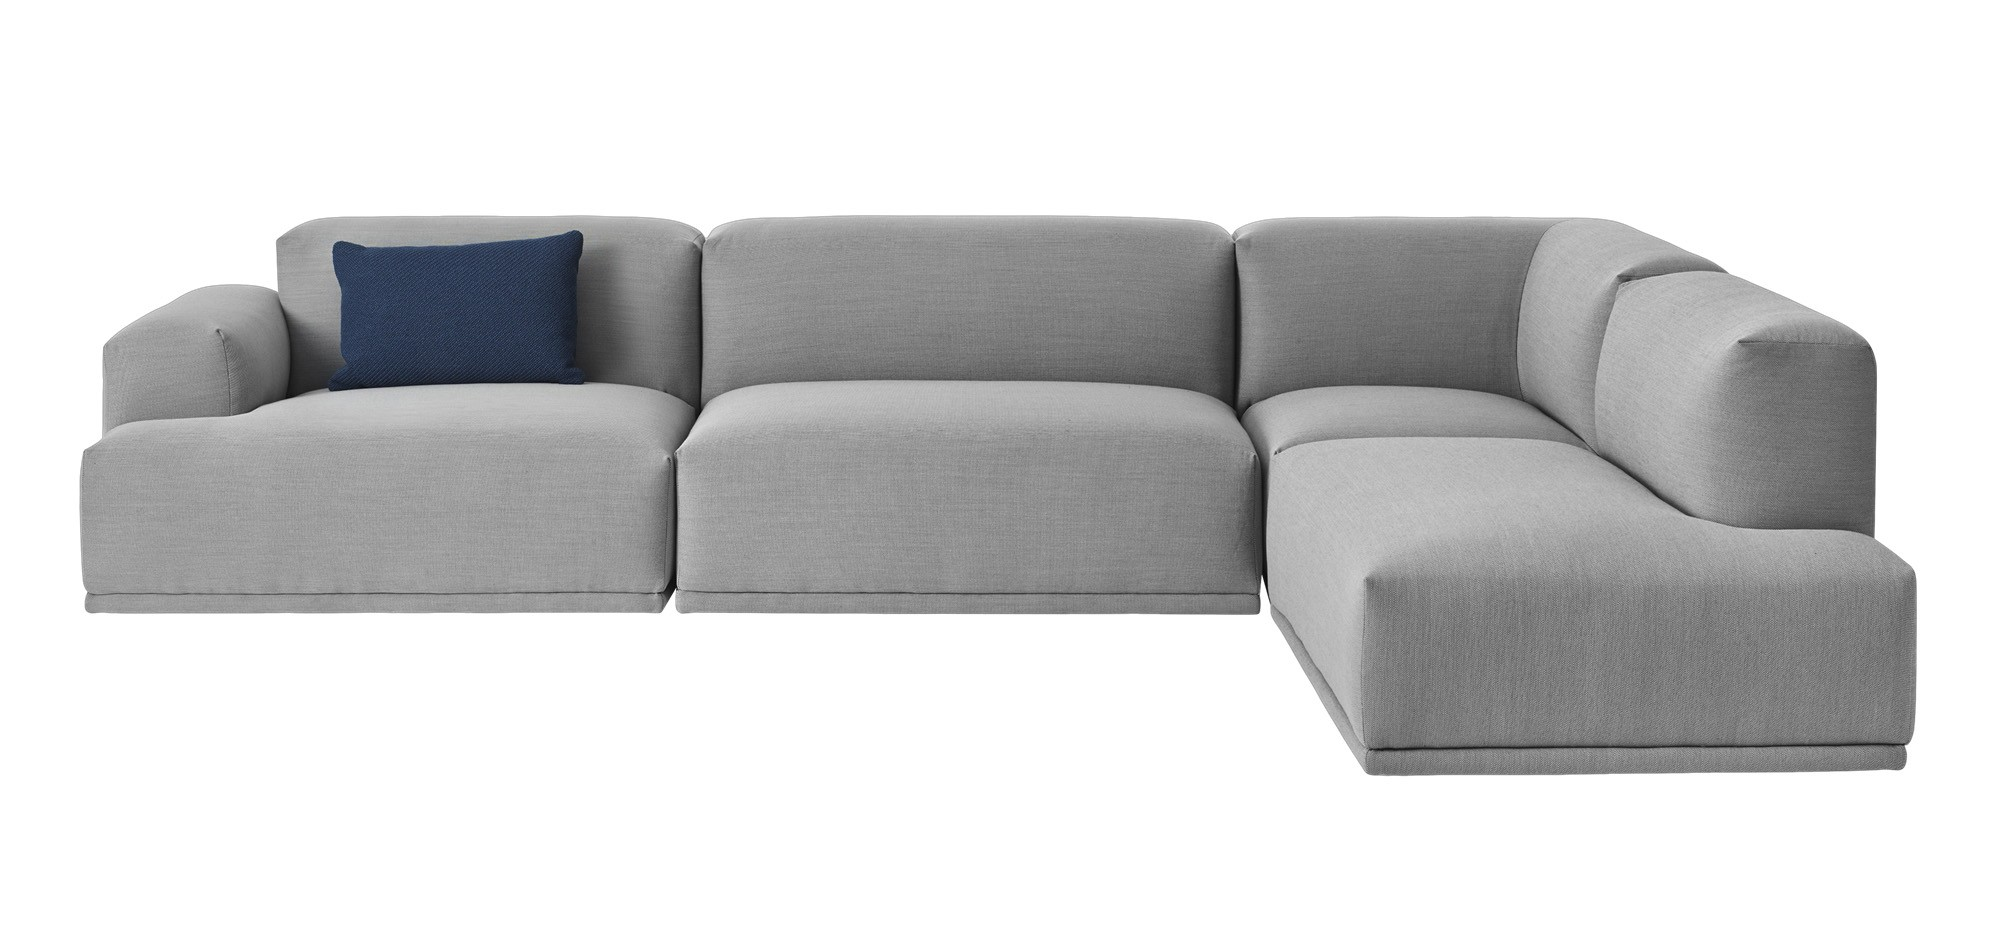 muuto connect modular sofa ZPHYGHW